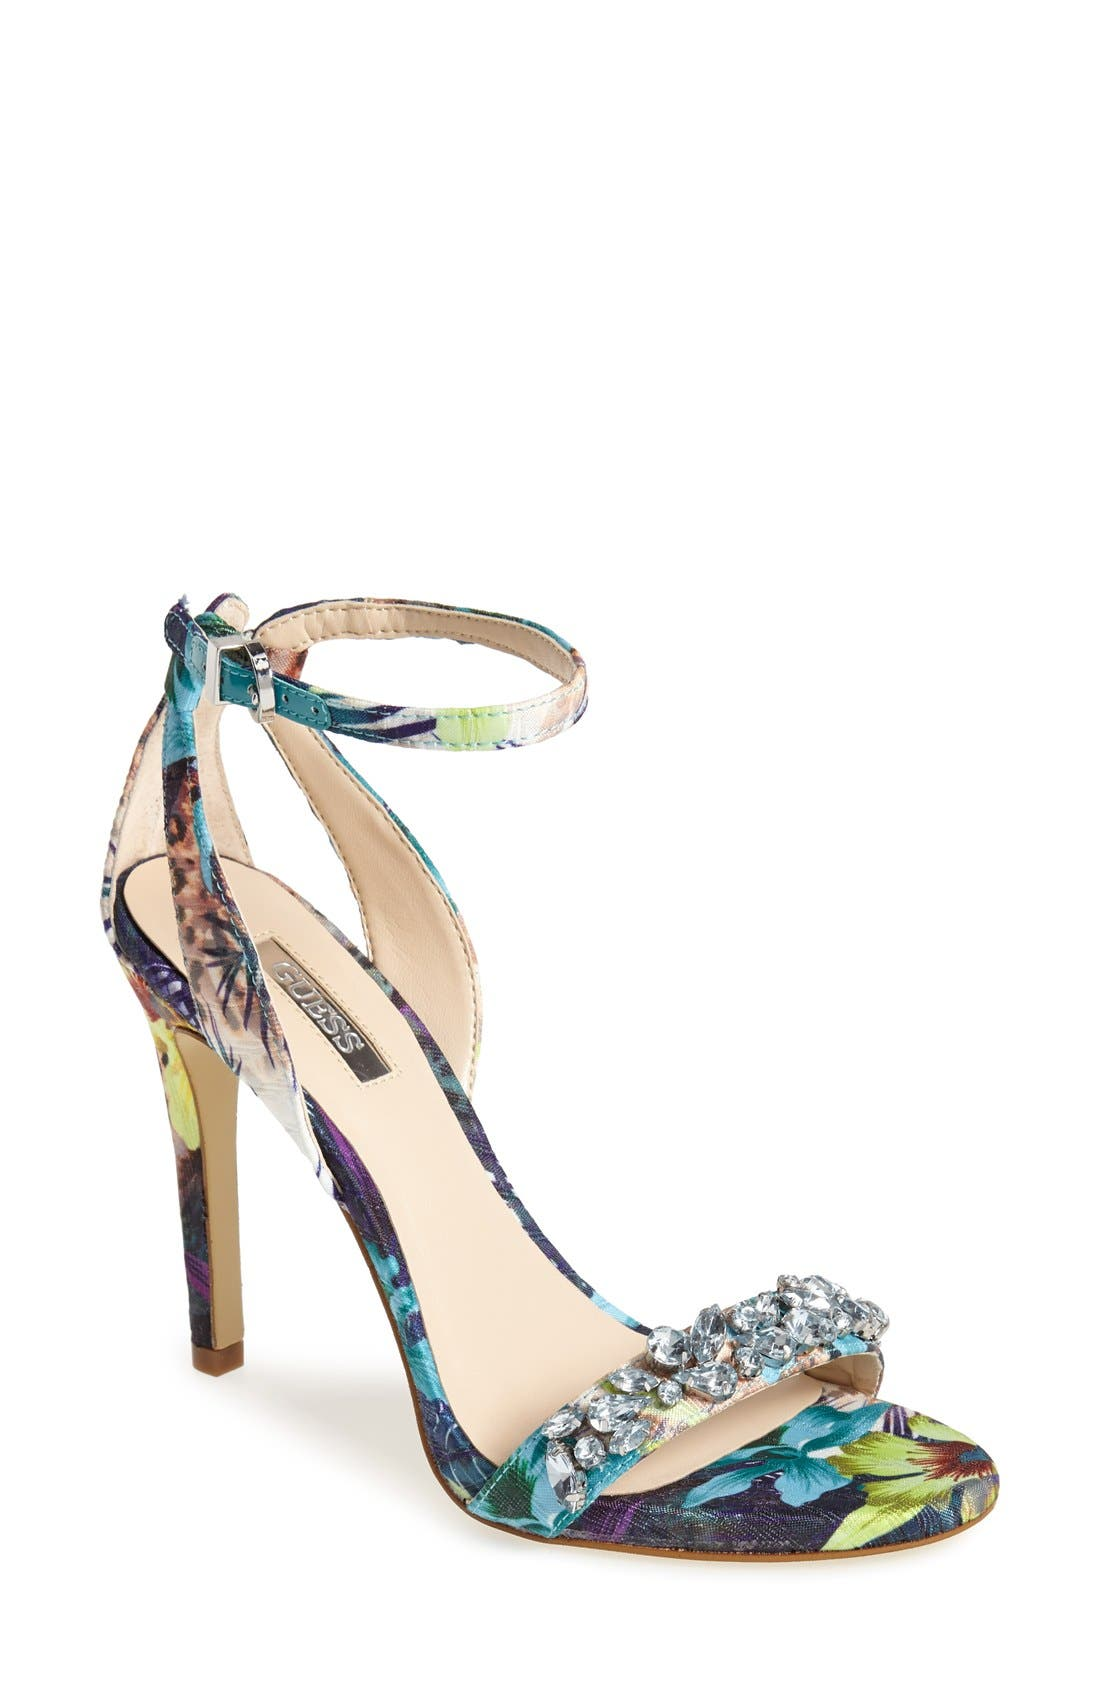 Main Image - Guess 'Catarina' Ankle Strap Sandal (Women)